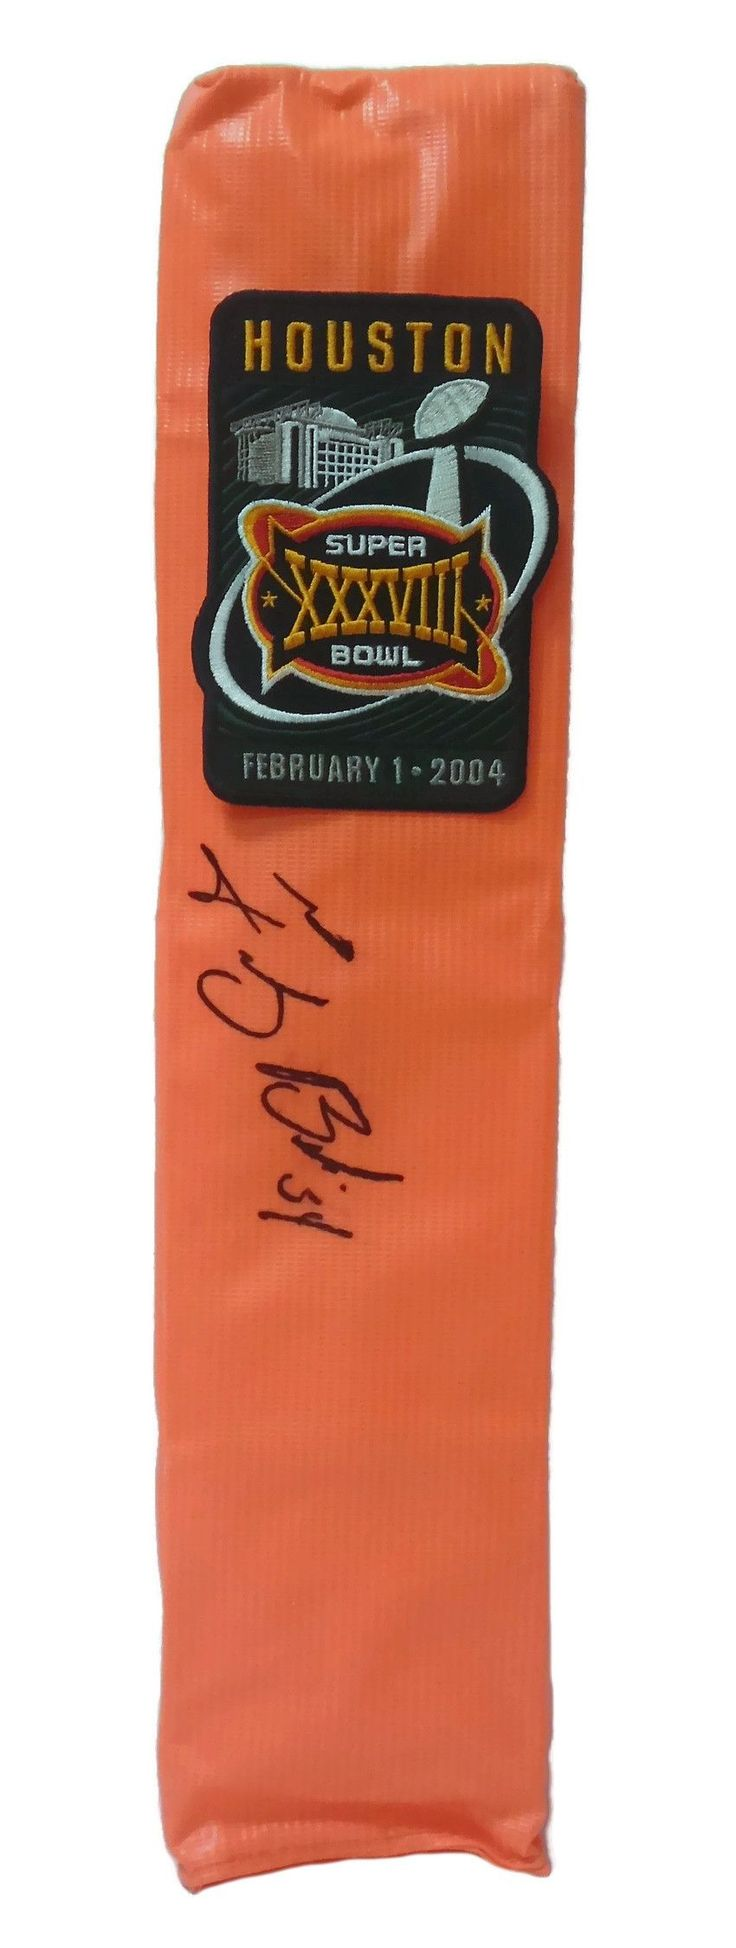 Tedy Bruschi Autographed New England Patriots Super Bowl XXXVIII Full Size Football End Zone Touchdown Pylon, Proof